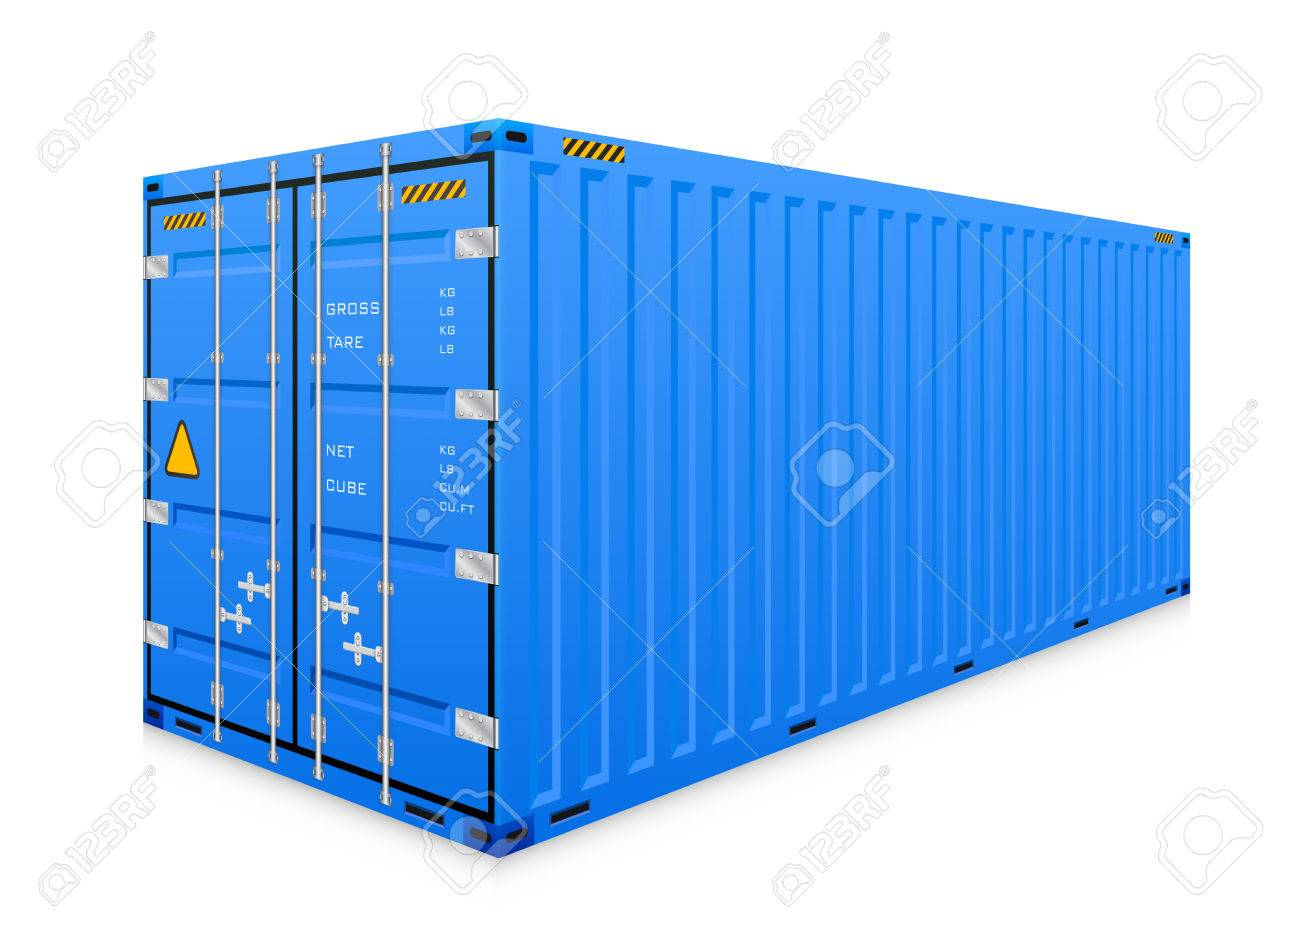 cargo container isolated on white background. - 54302778